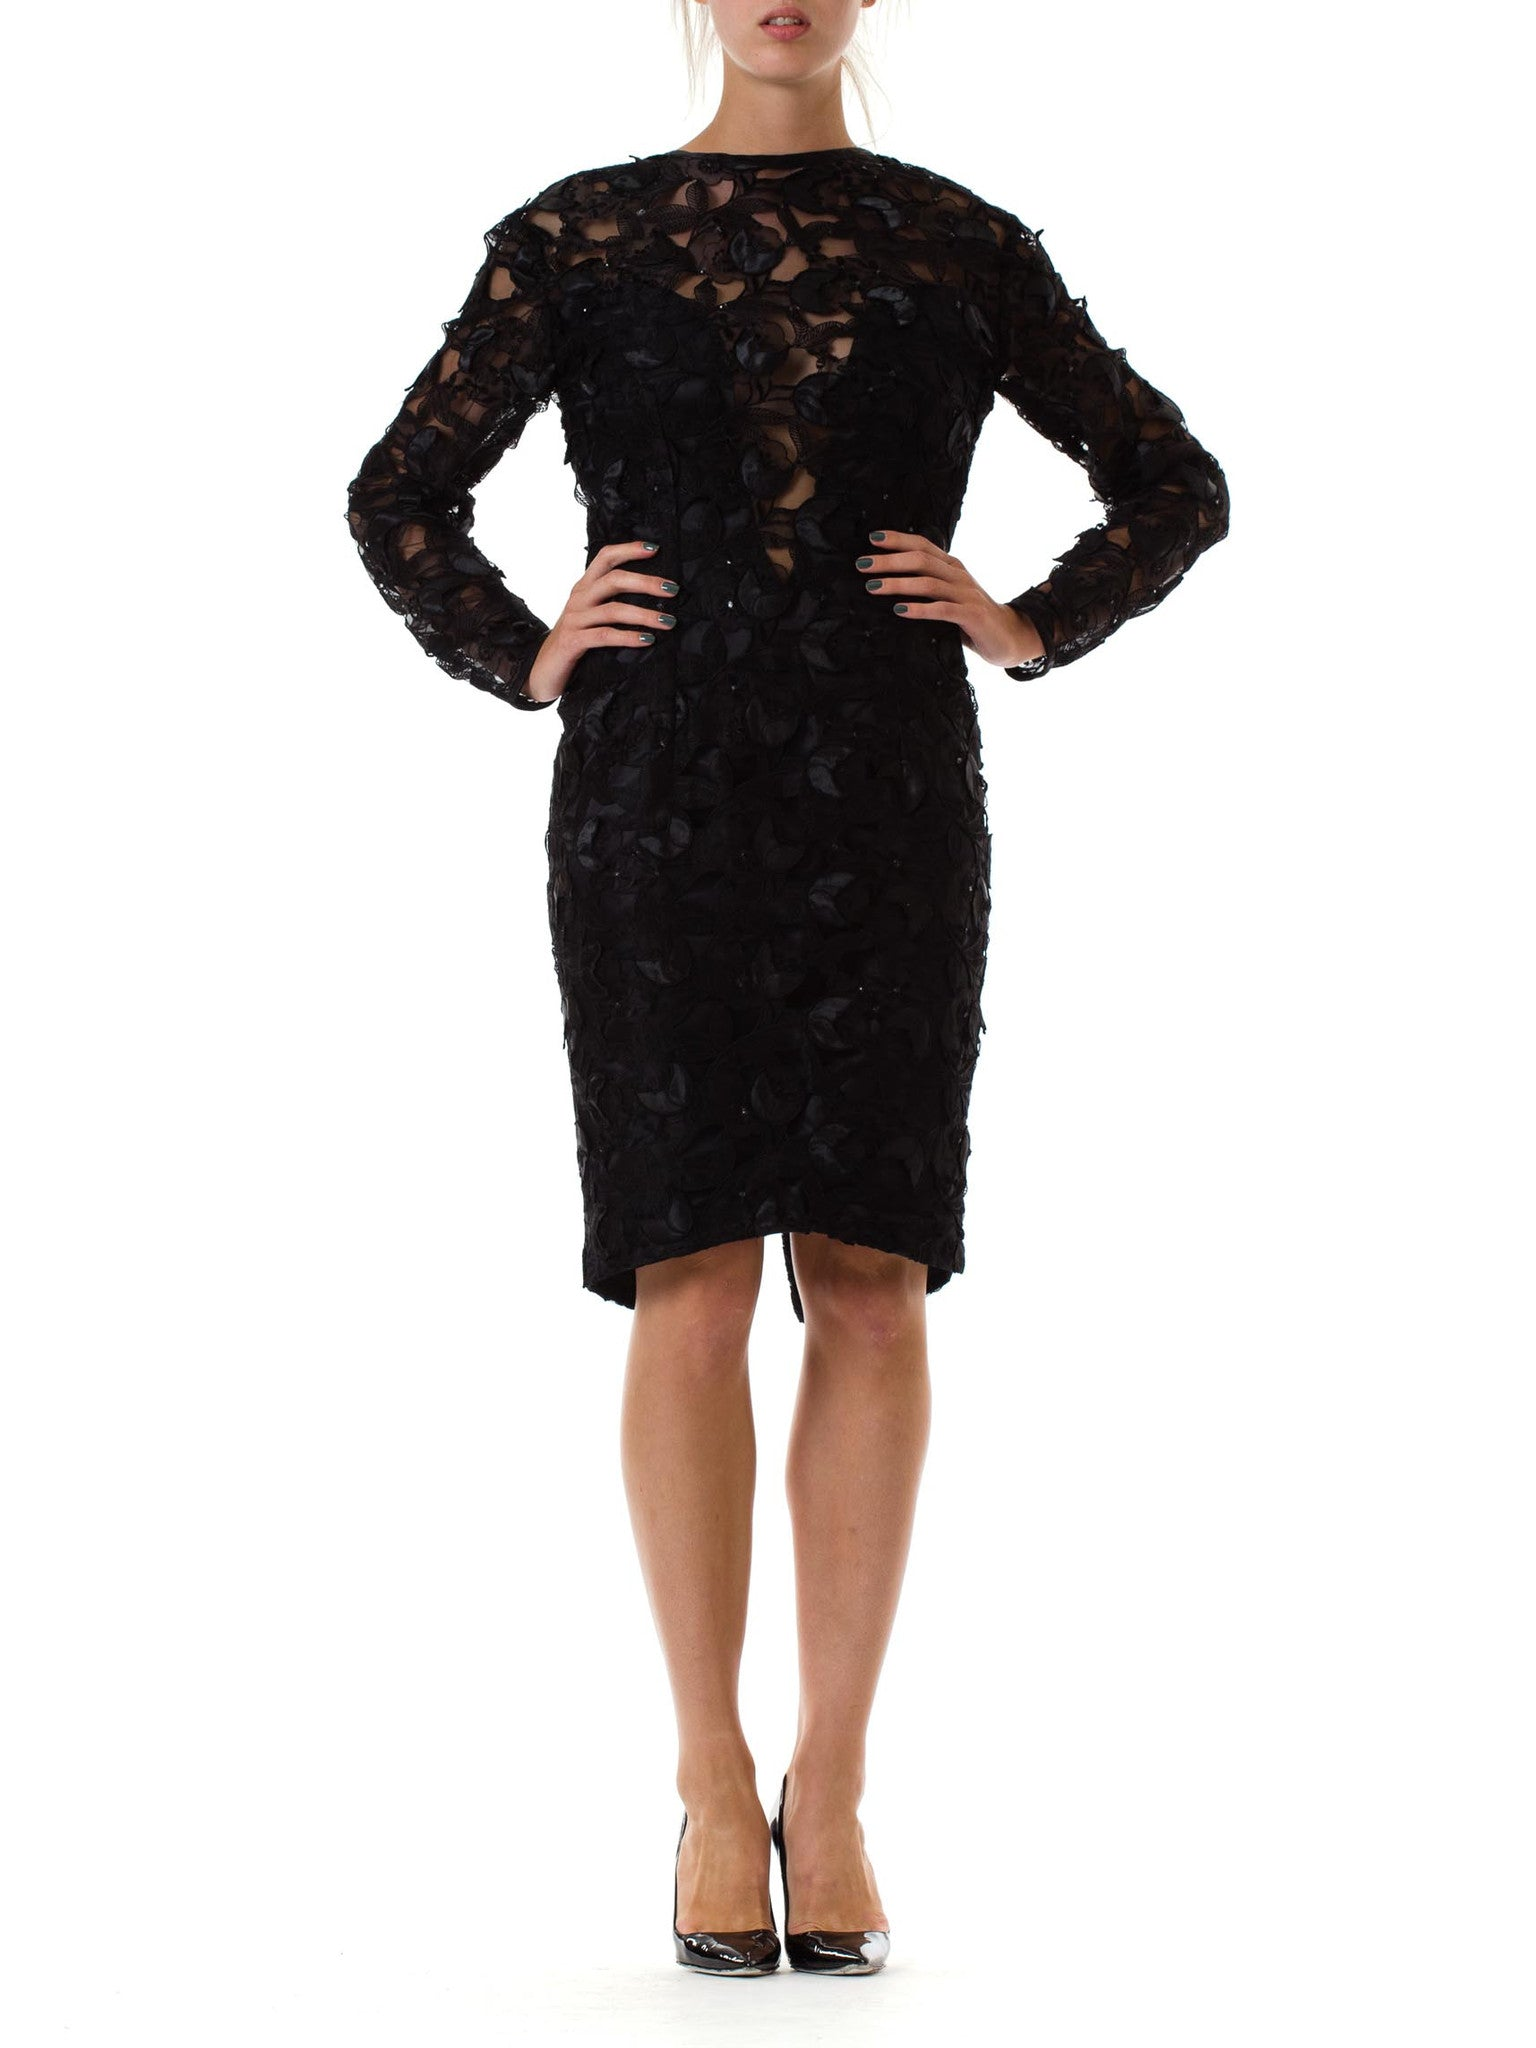 1980s Black Net and Lace Open Back Cocktail Dress with Rhinestones